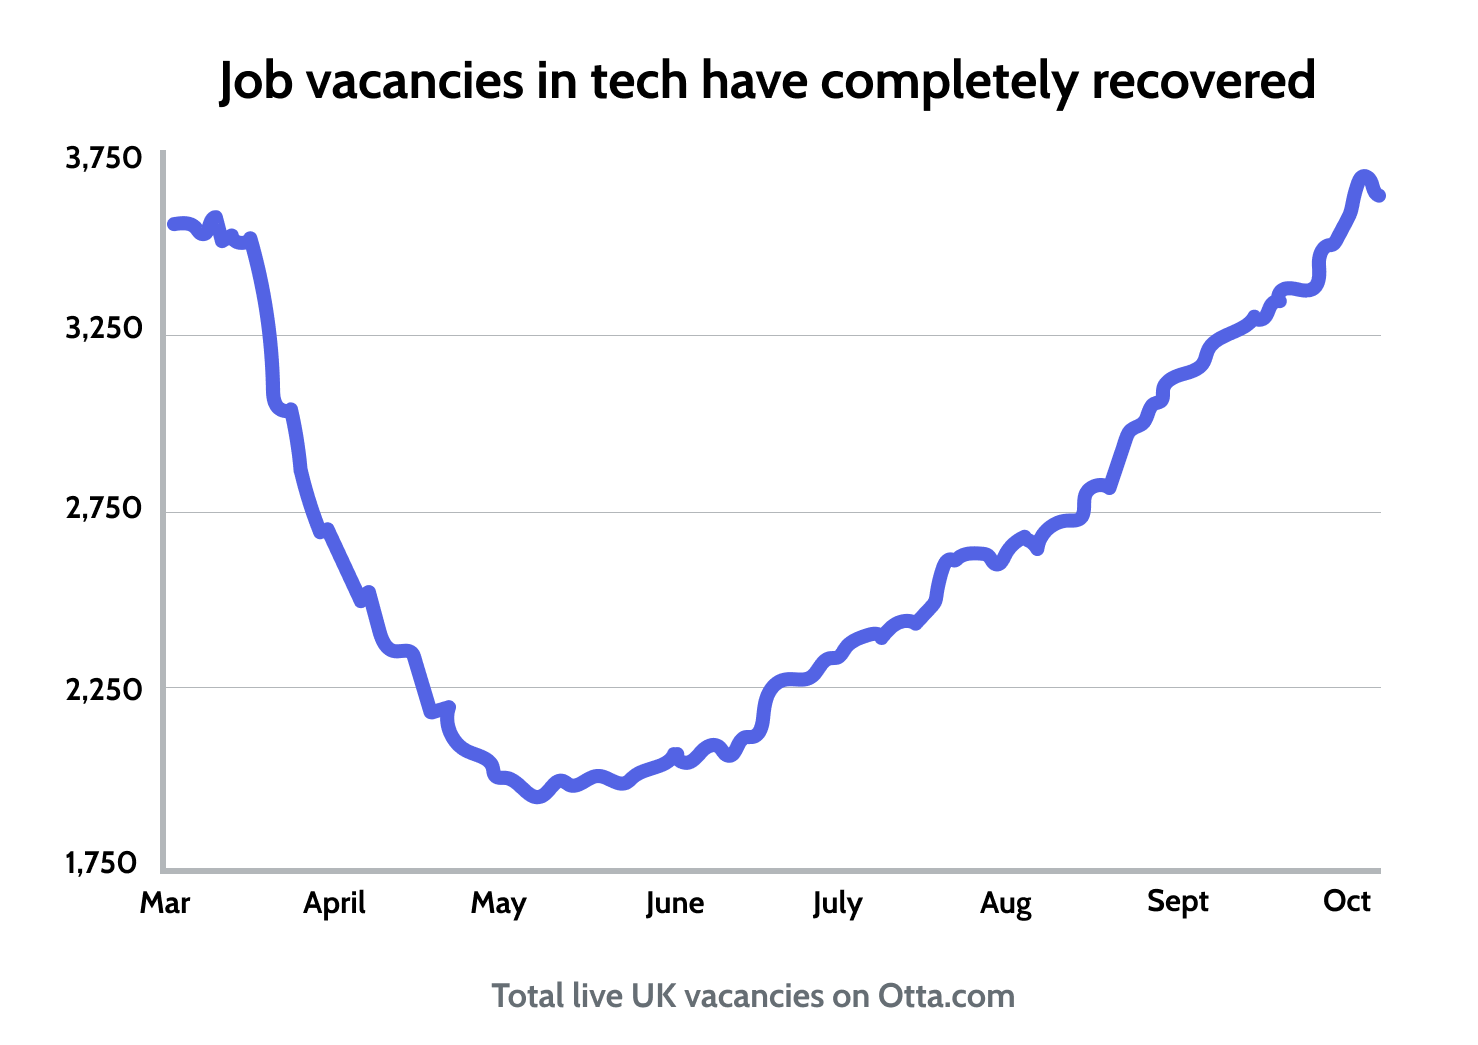 Job vacancies in tech have completely recovered